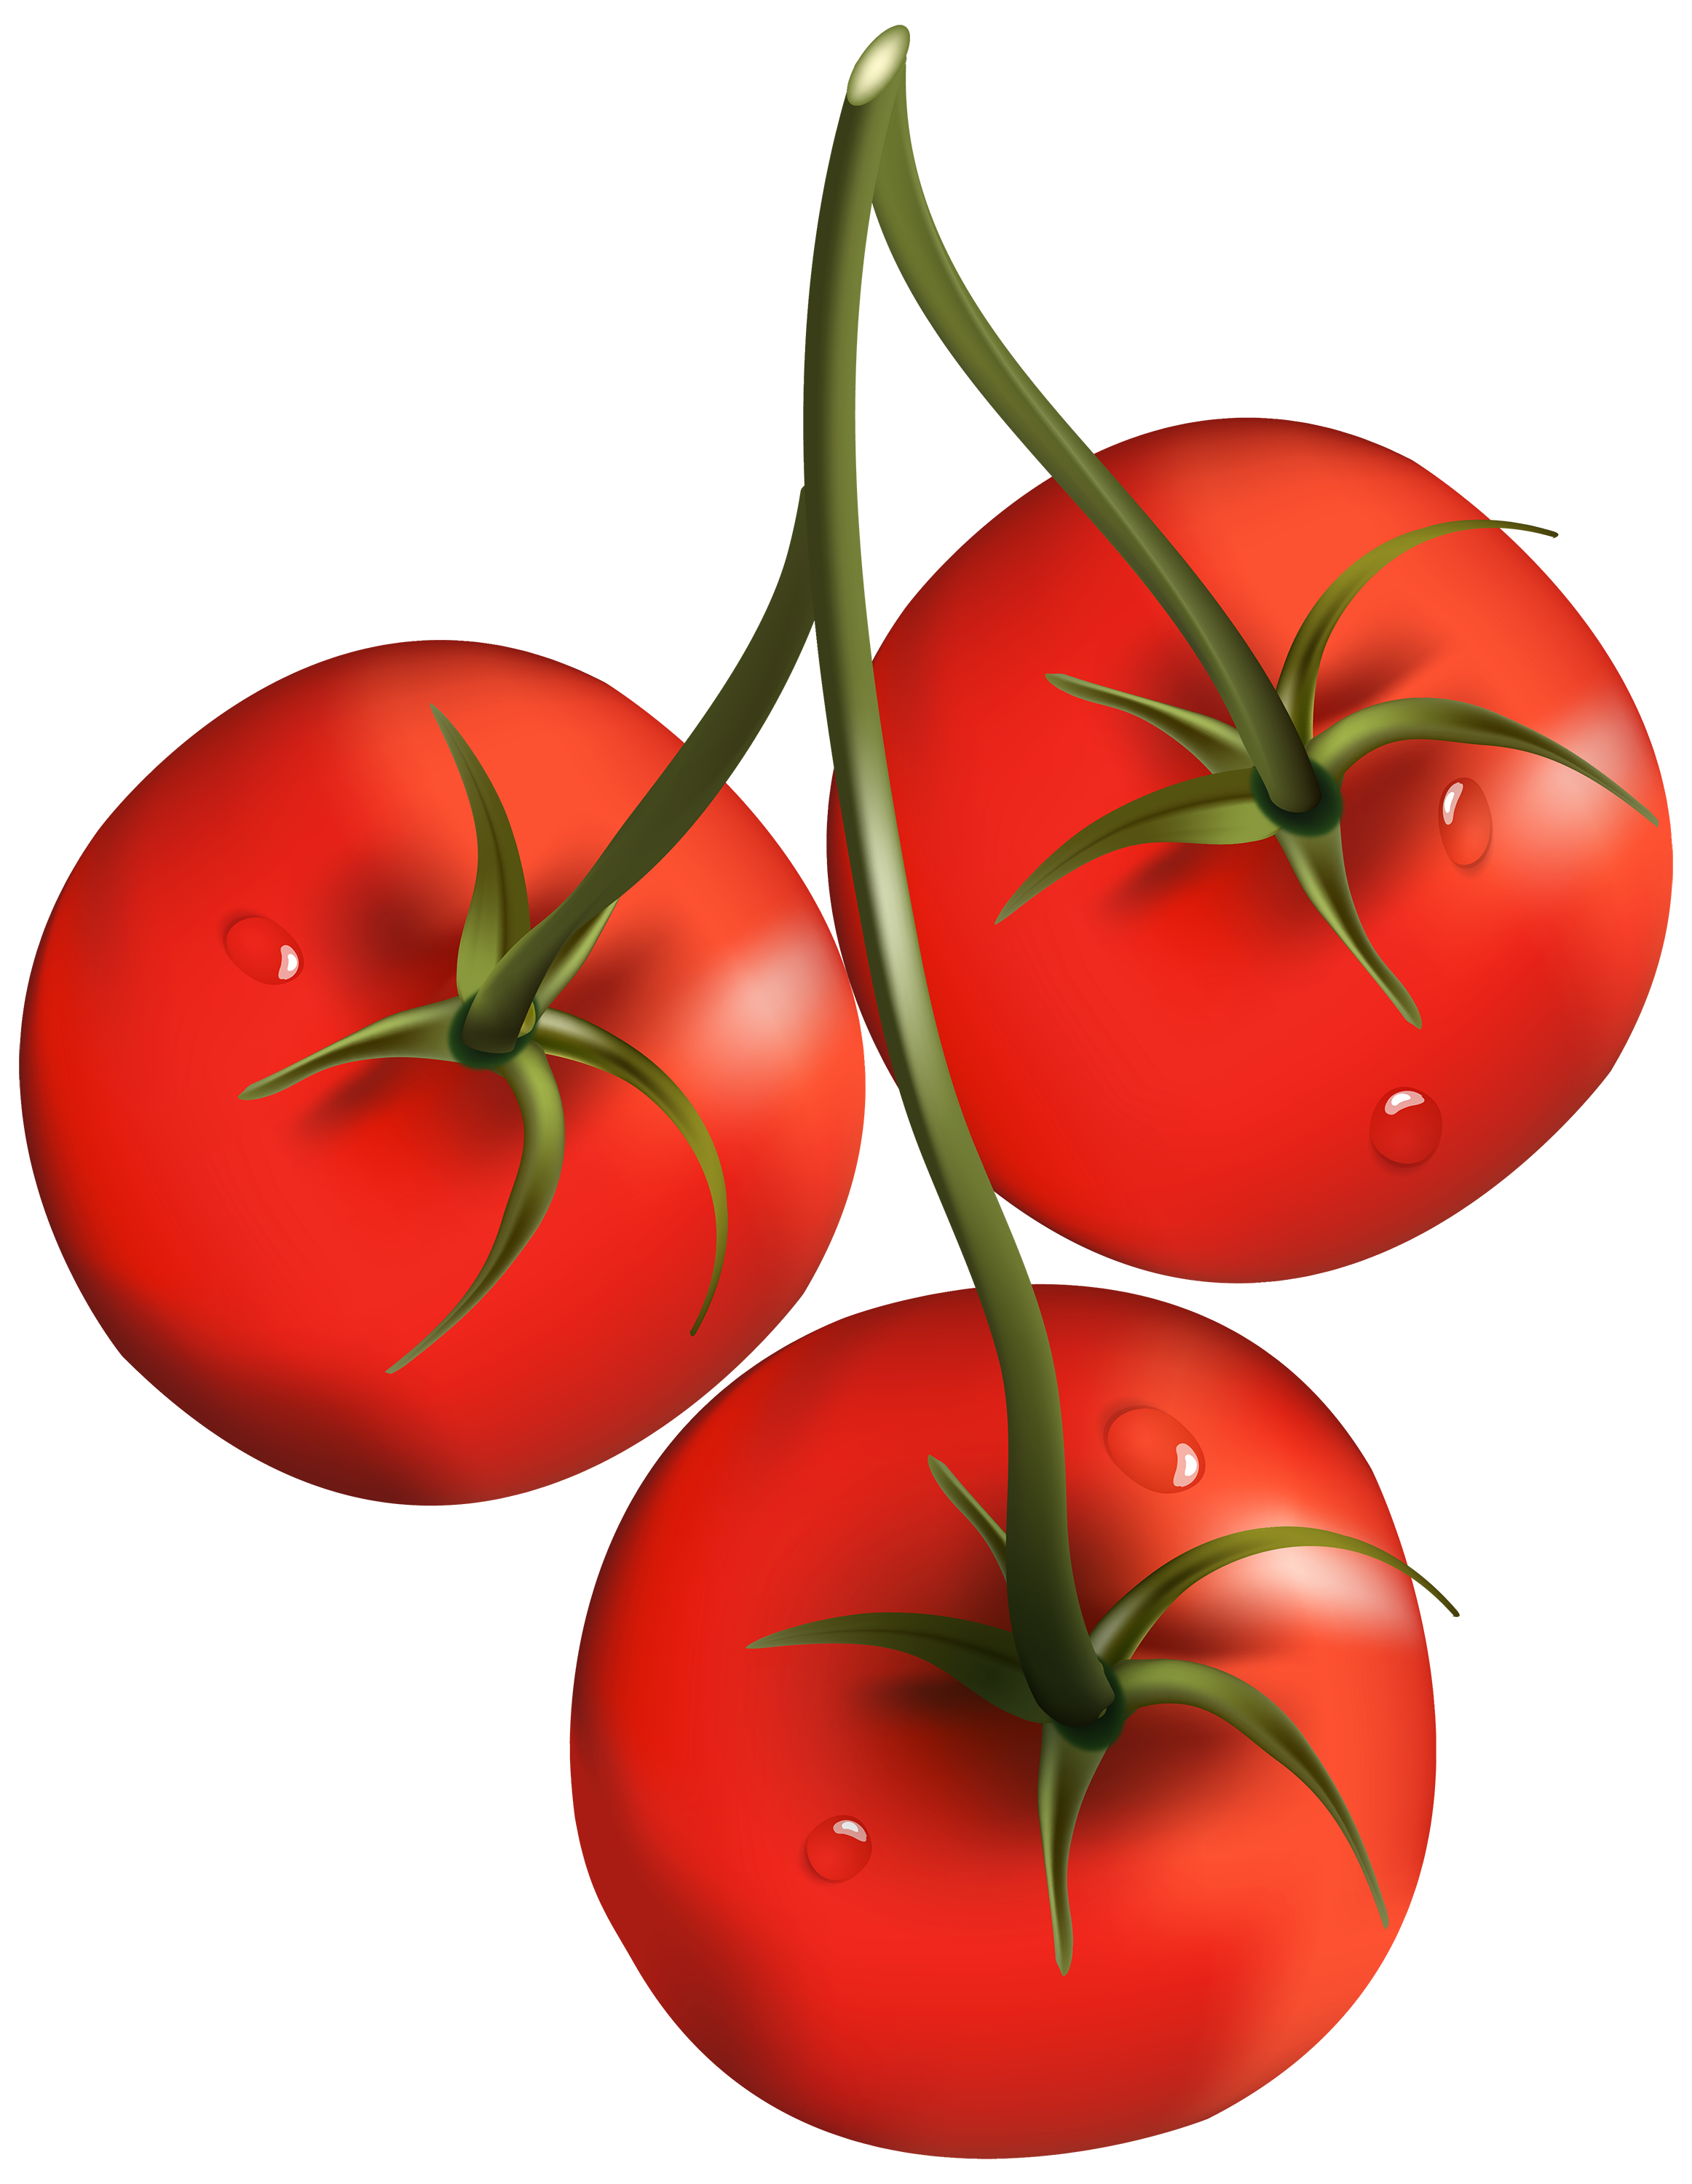 Tomatoes clipart tomato fruit. Pin by hopeless on